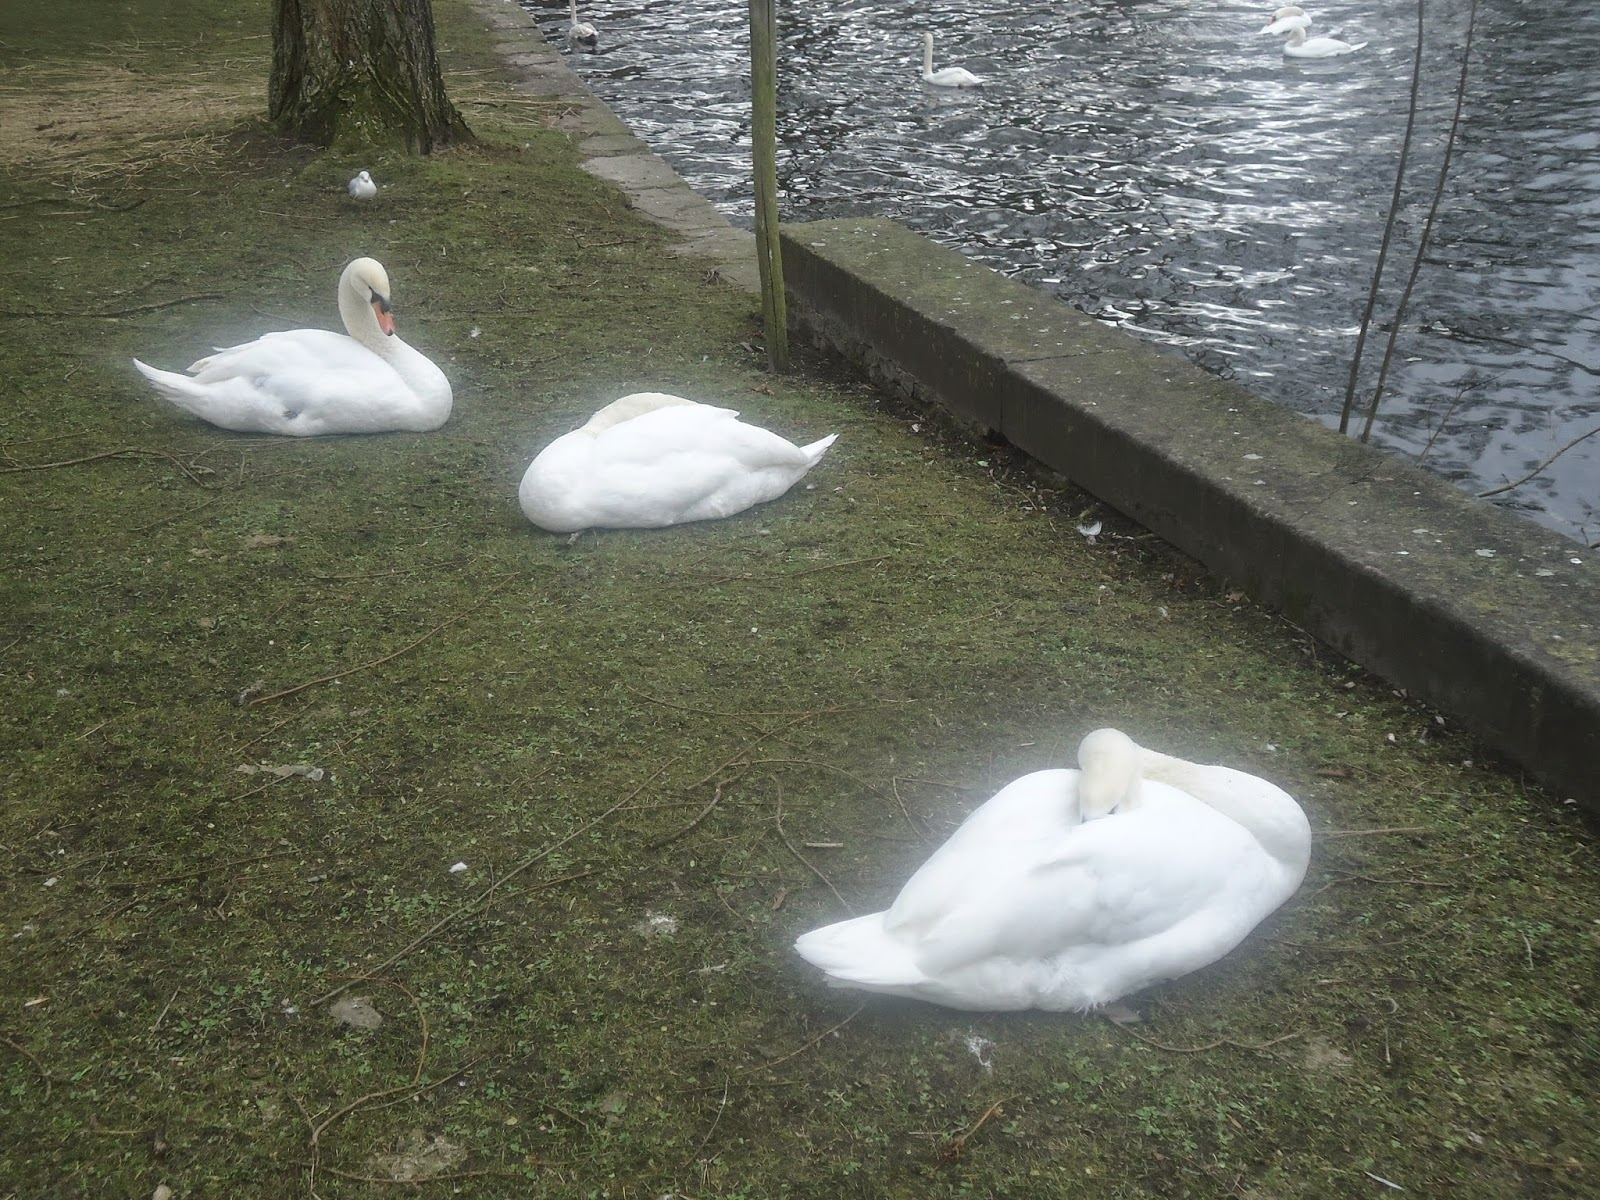 The tale of the White Swans in Bruges (Belgium)